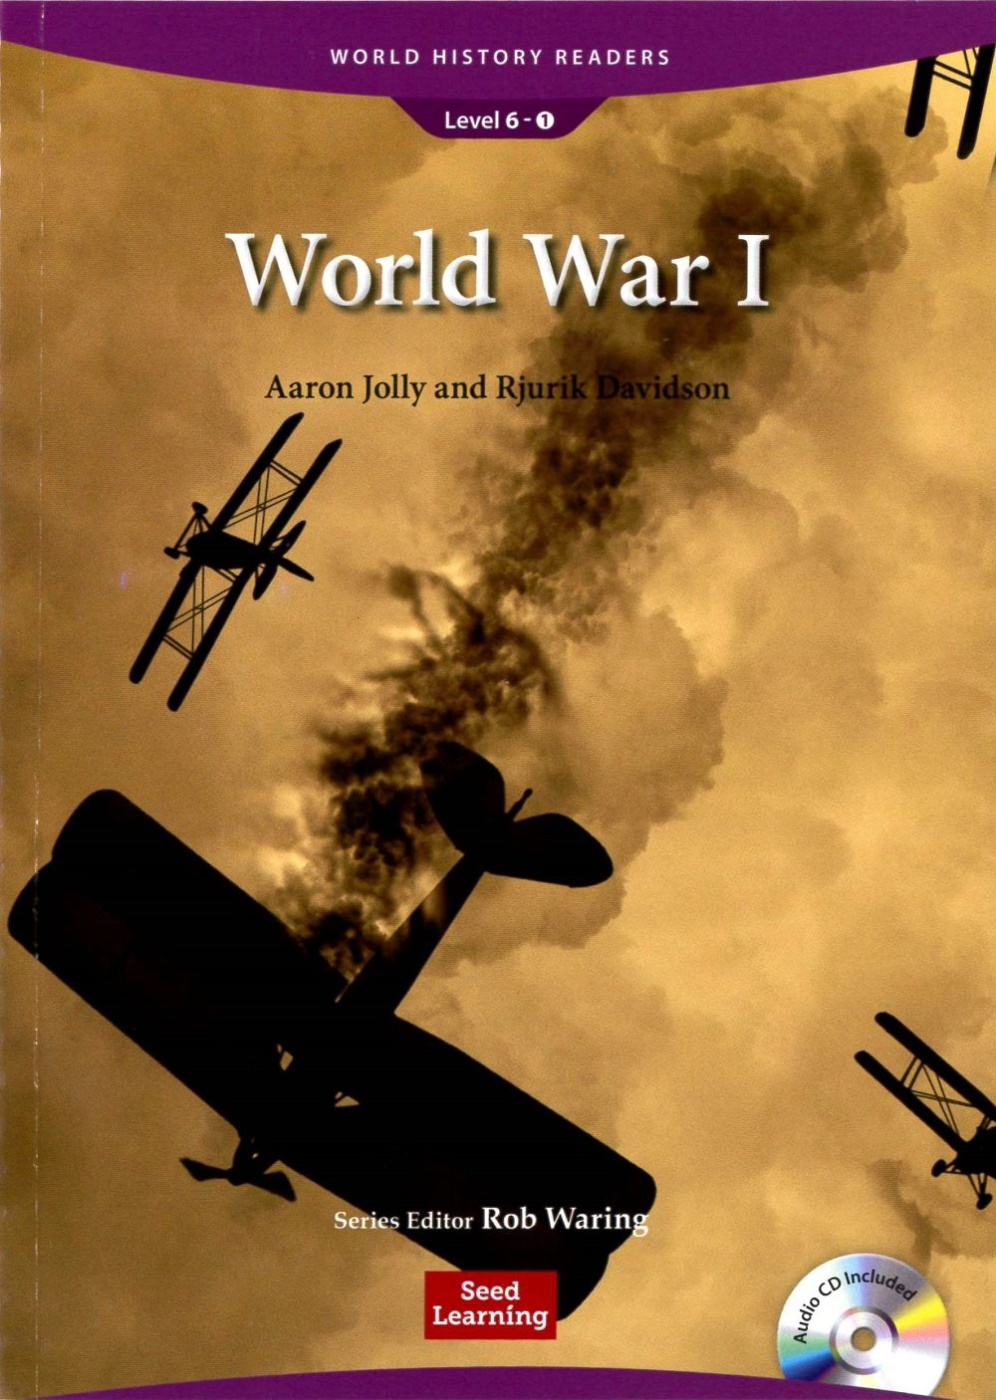 World History Readers ^(6^) World War I with